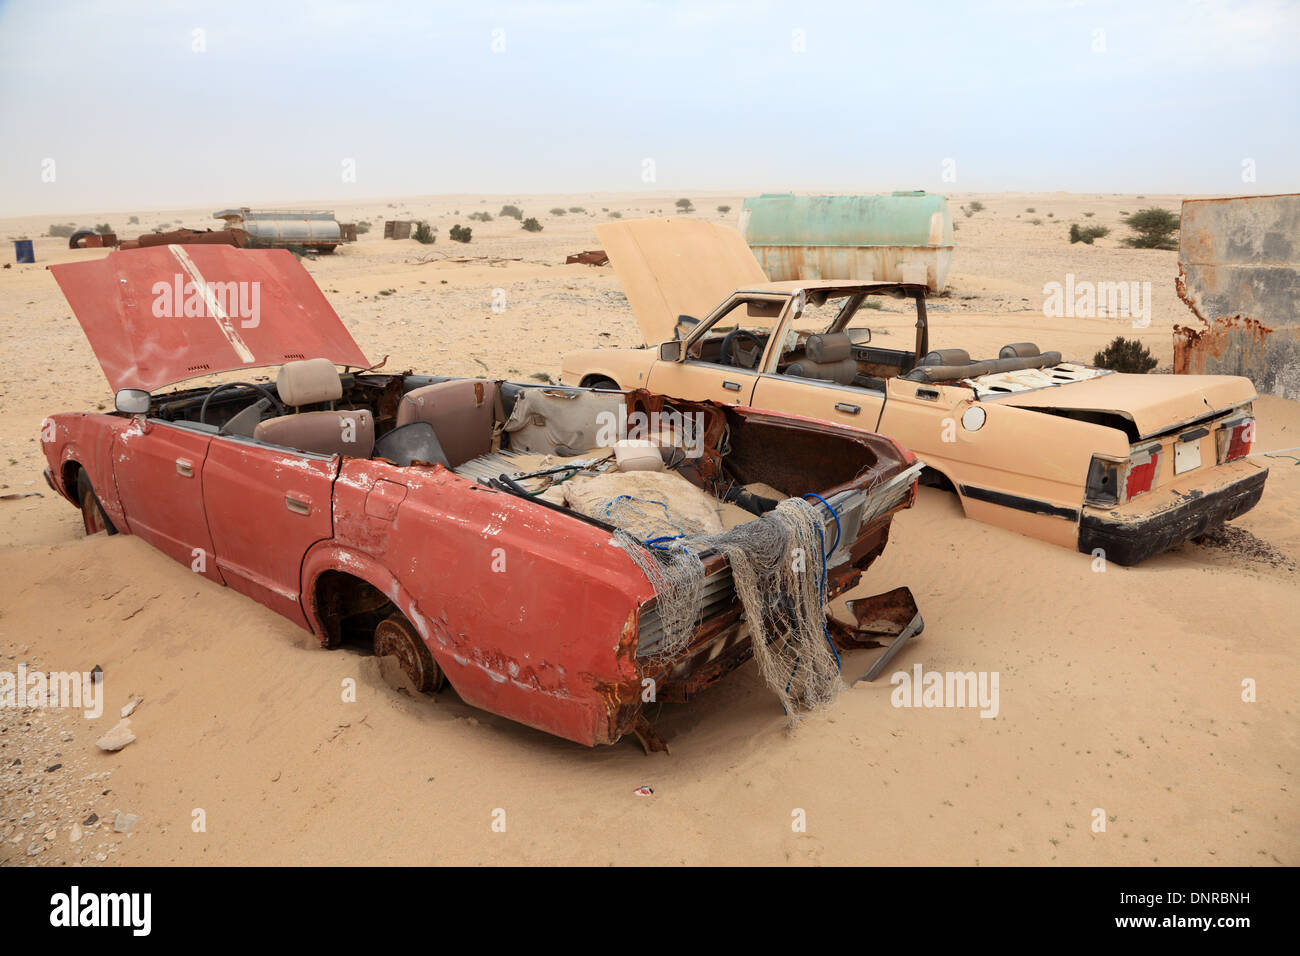 Abandoned Car In Desert High Resolution Stock Photography And Images Alamy